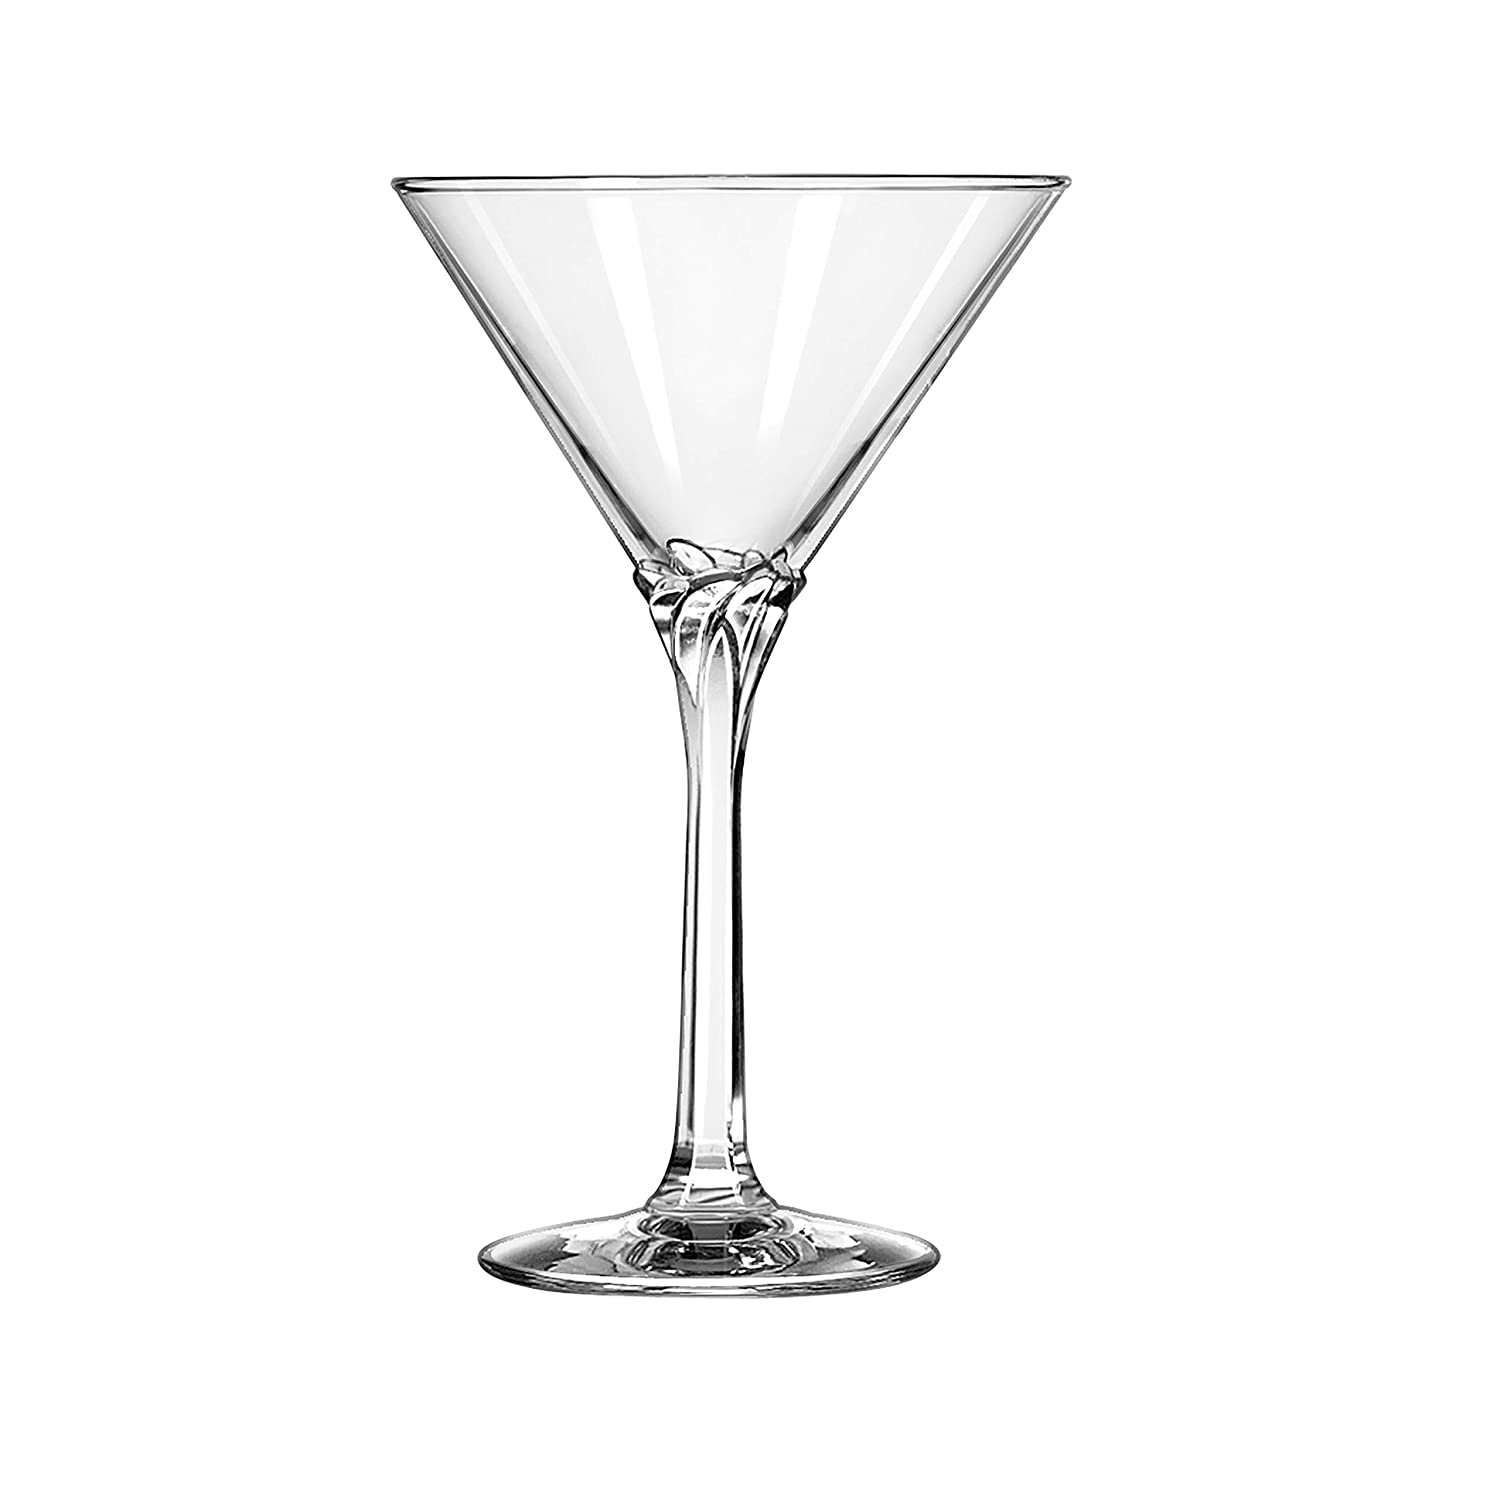 Libbey 8978 Libbey Stemware Domaine 8 oz. Martini Glass